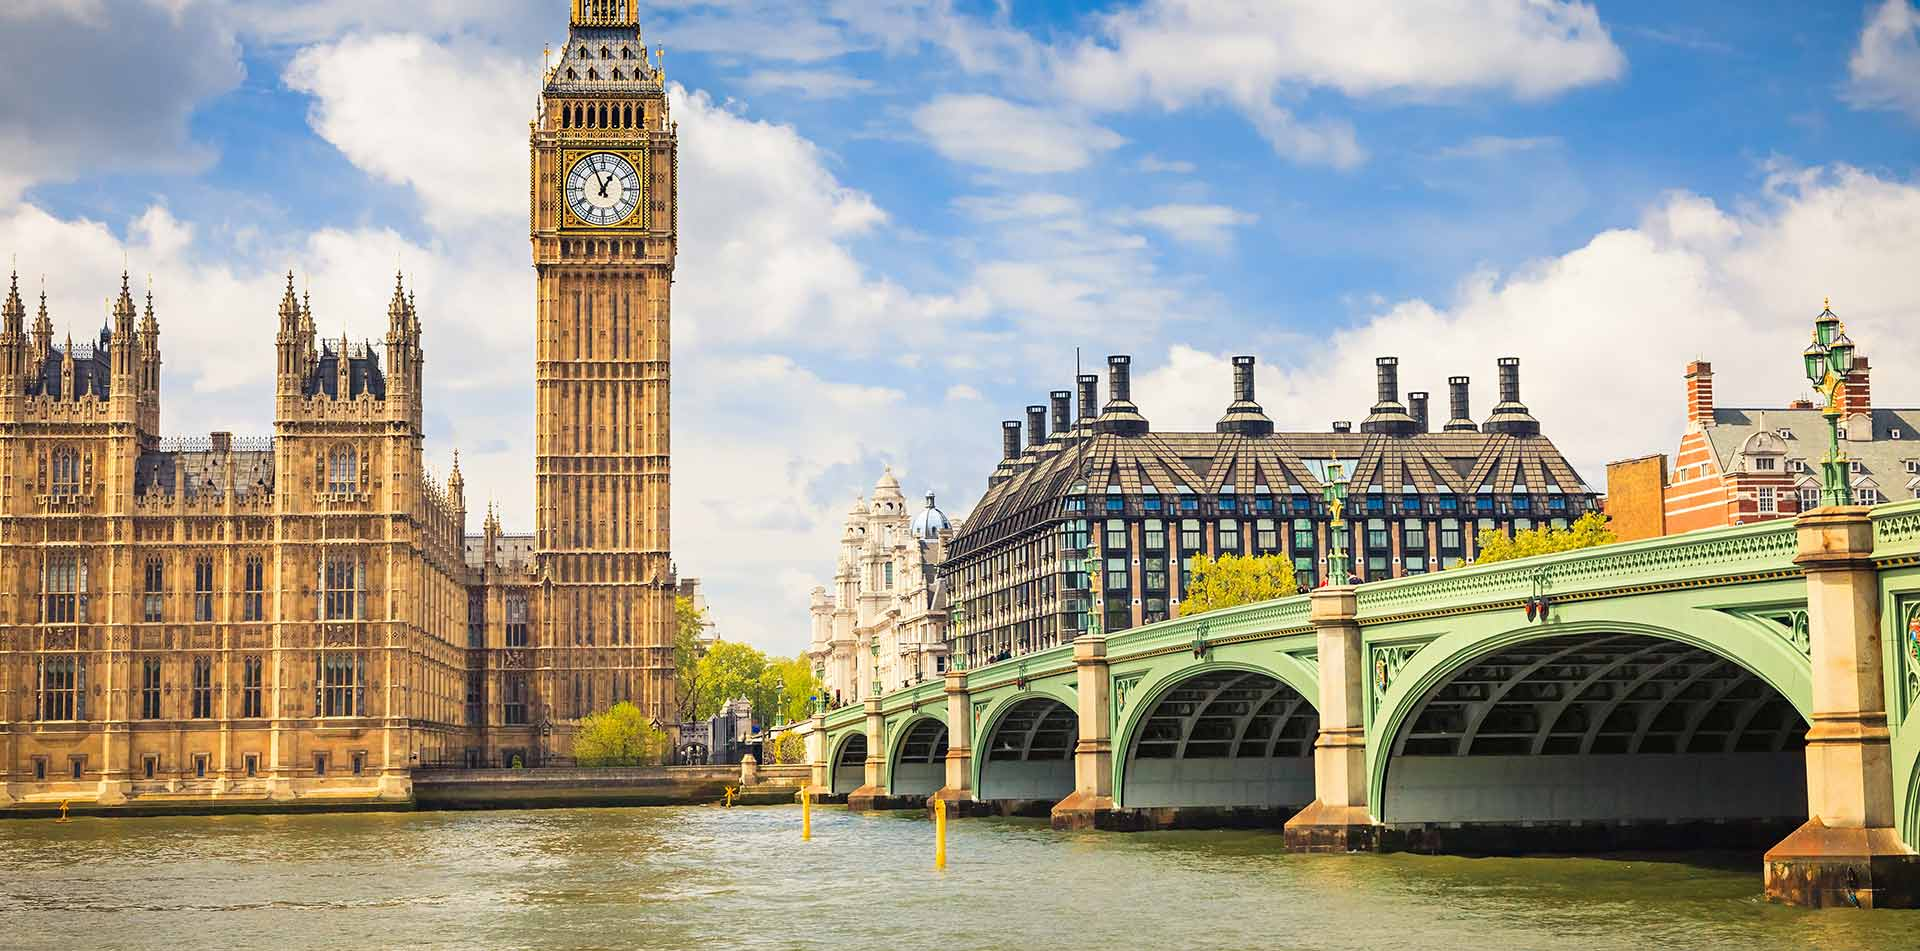 Europe United Kingdom England London famous Big Ben and Palace of Westminster on River Thames - luxury vacation destinations